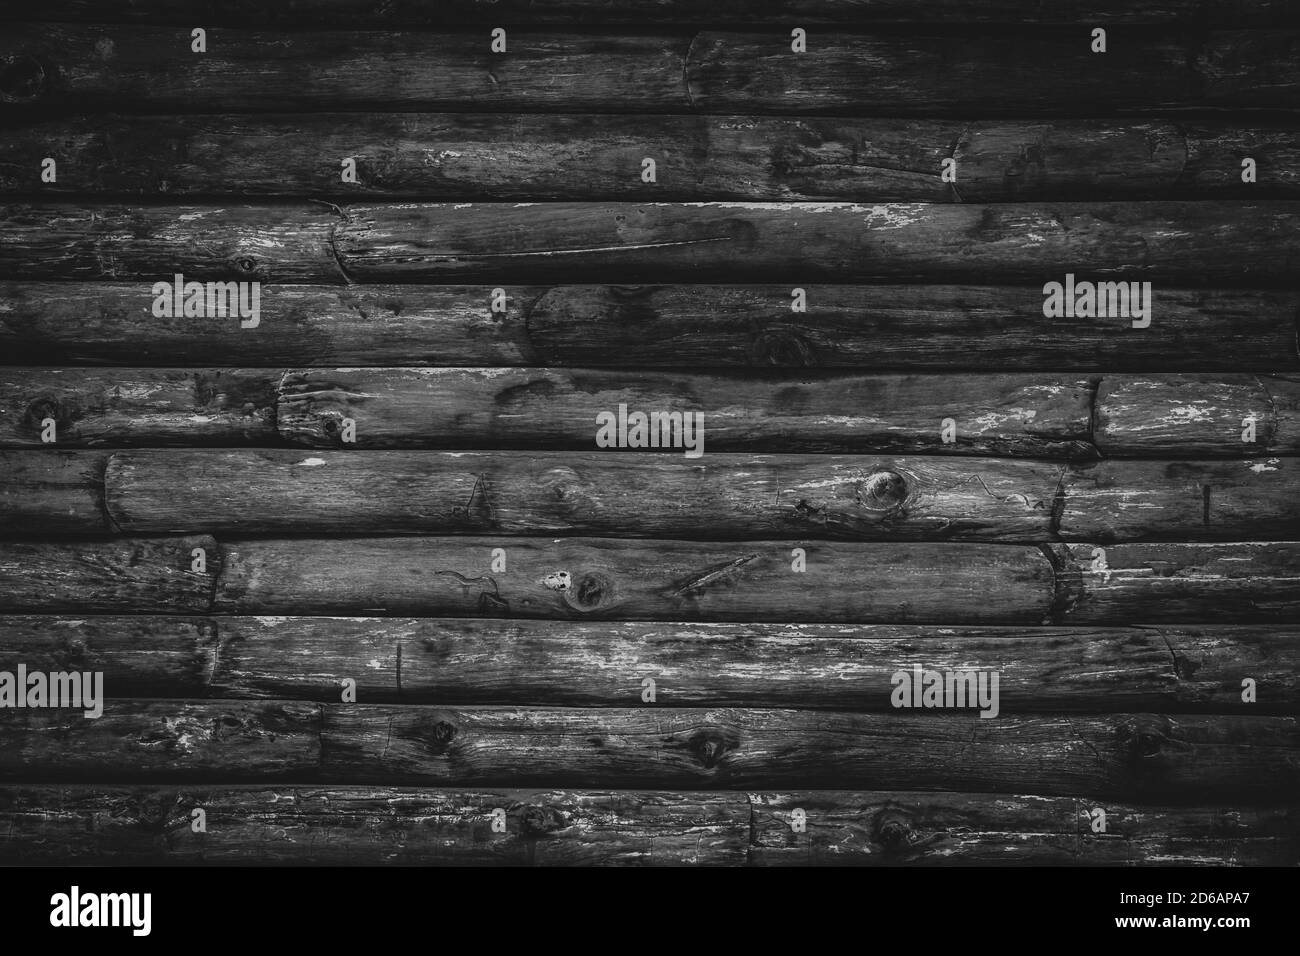 Dark Wood Plank Wall Texture Background Black Wooden Board Old Natural Pattern Reclaimed Old Grunge Vintage Wood Wall Paneling Texture Stock Photo Alamy